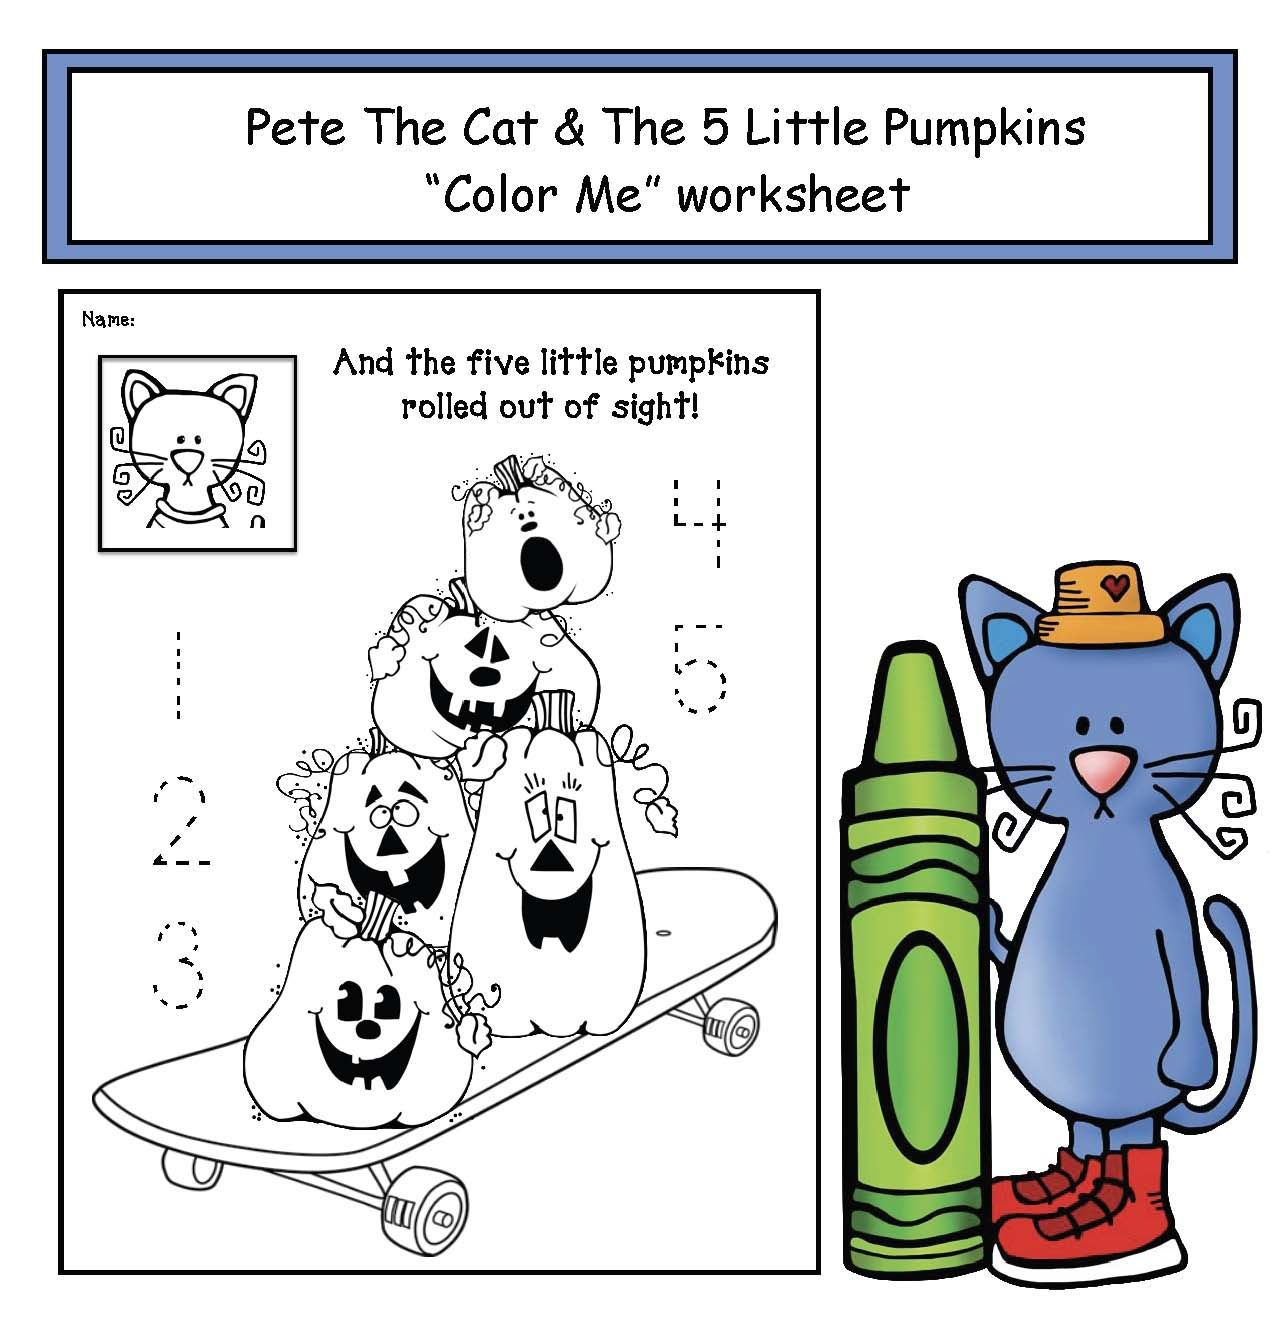 Skip Counting With How Many Seeds In A Pumpkin Story 5 Little Pumpkins Pumpkin Coloring Pages Pumpkin Poem